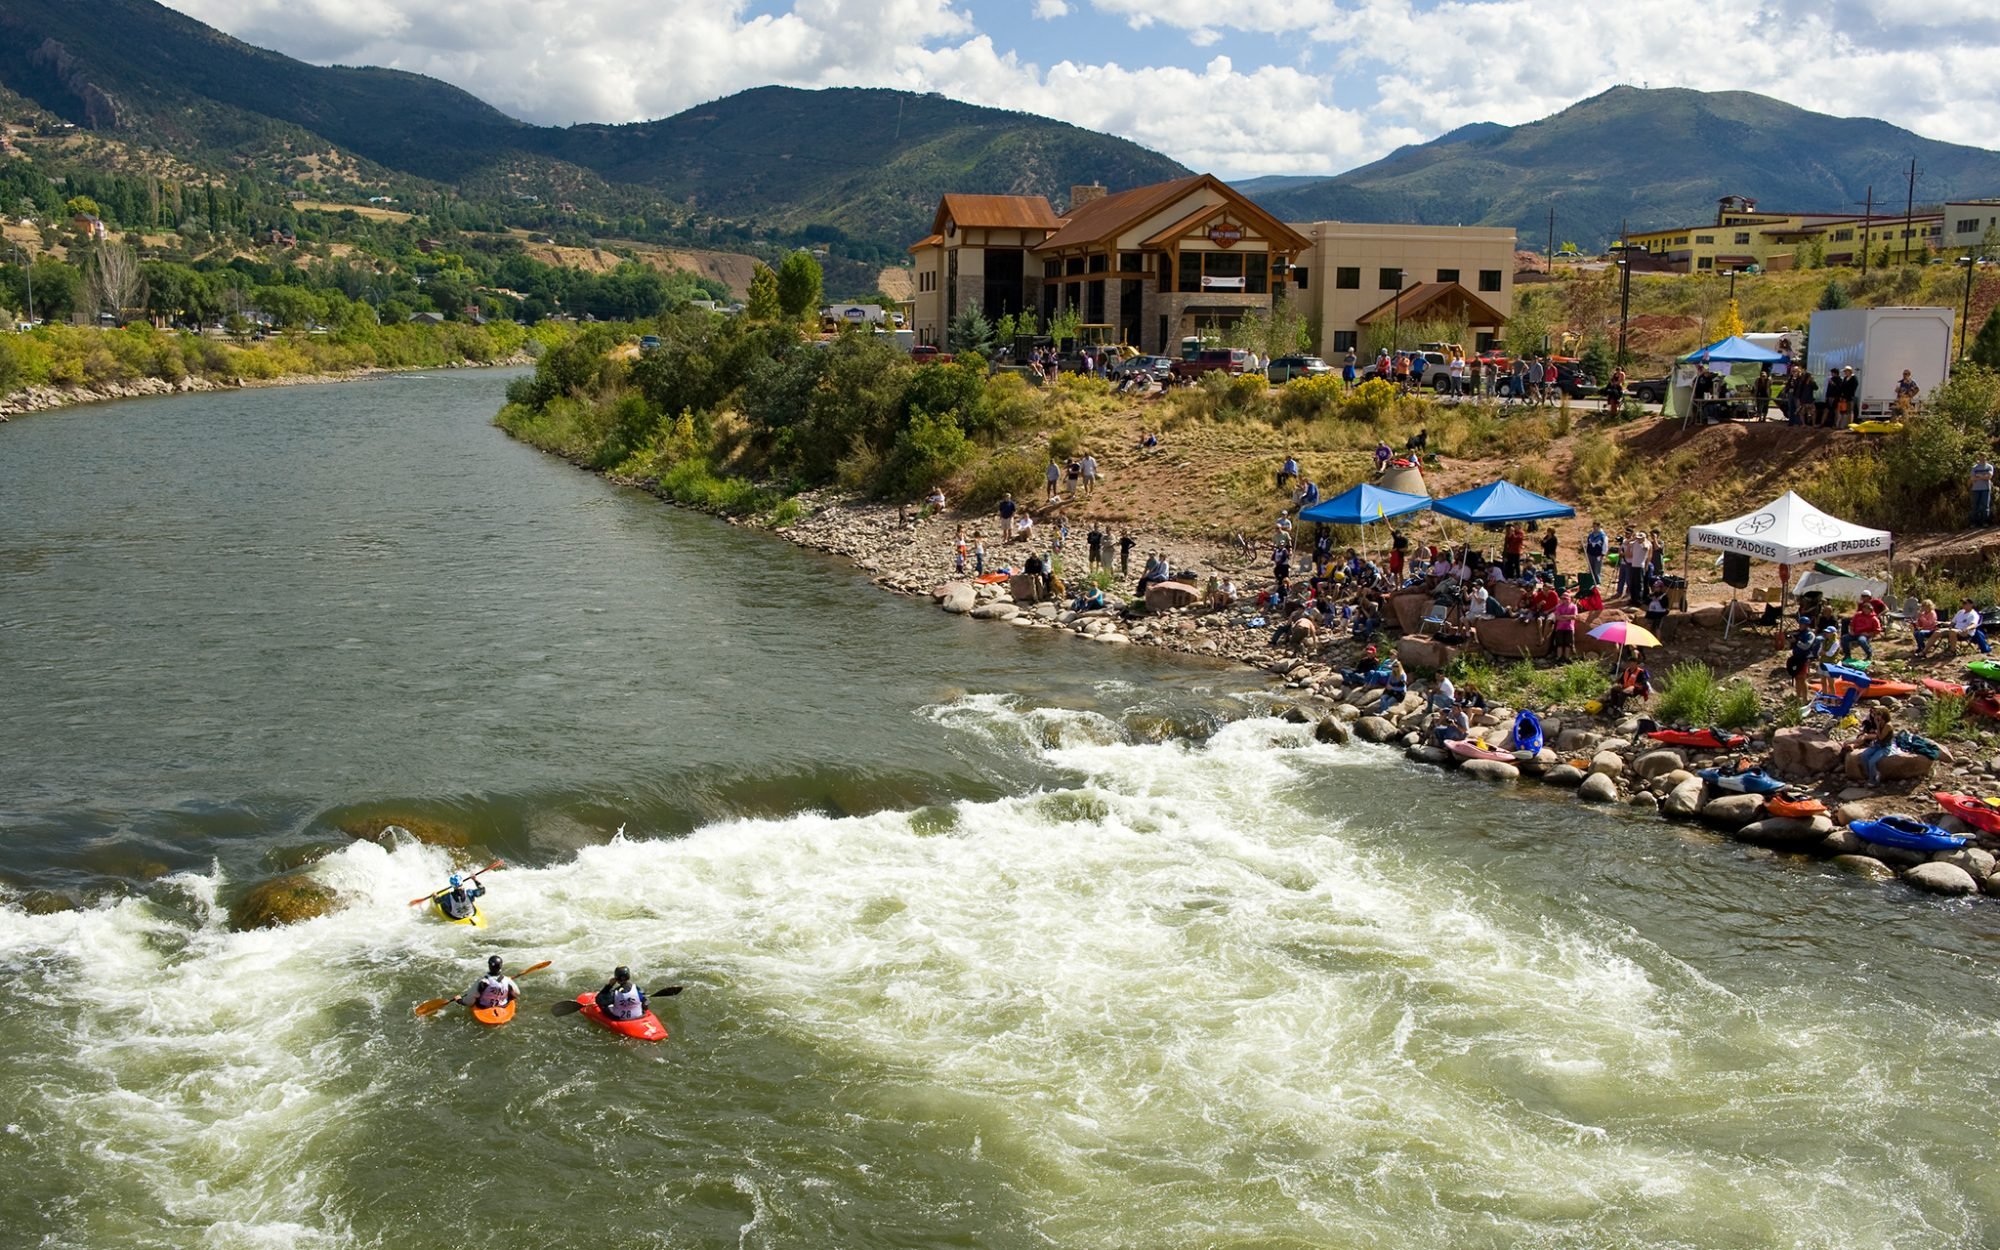 America's Best Towns for July 4th: Glenwood Springs